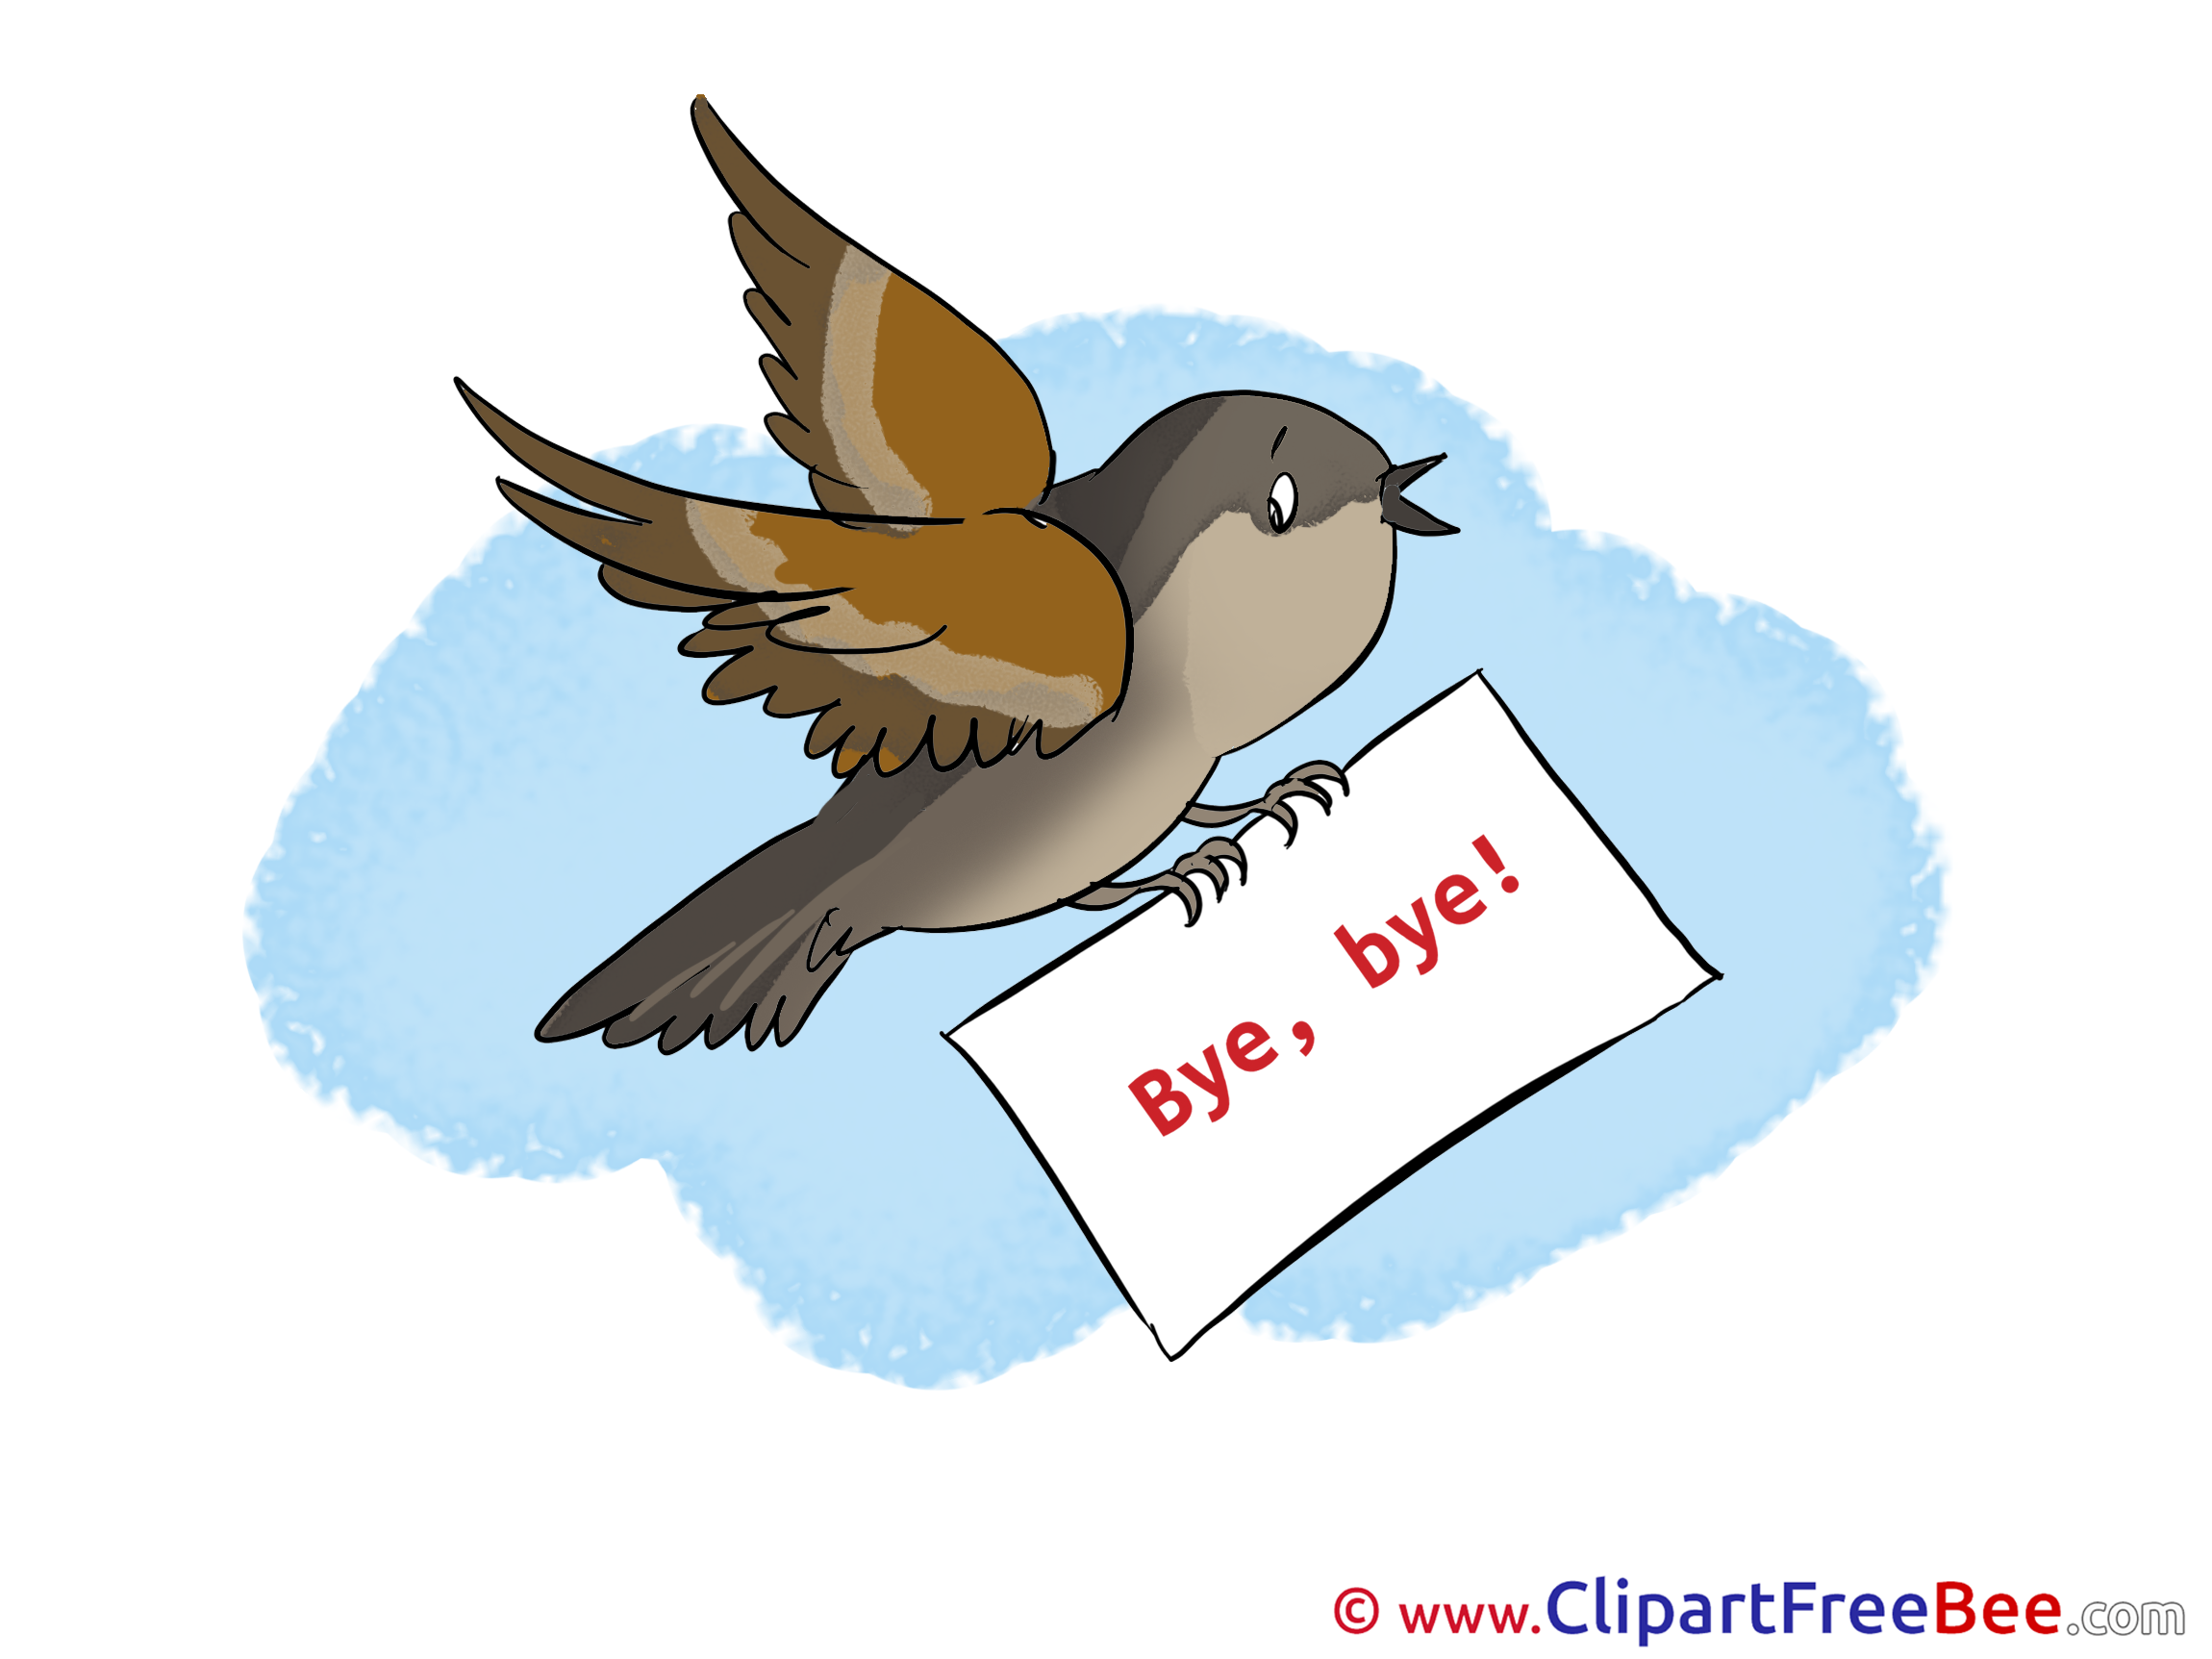 2300x1725 Good Bye Clip Art Images In High Resolution For Free